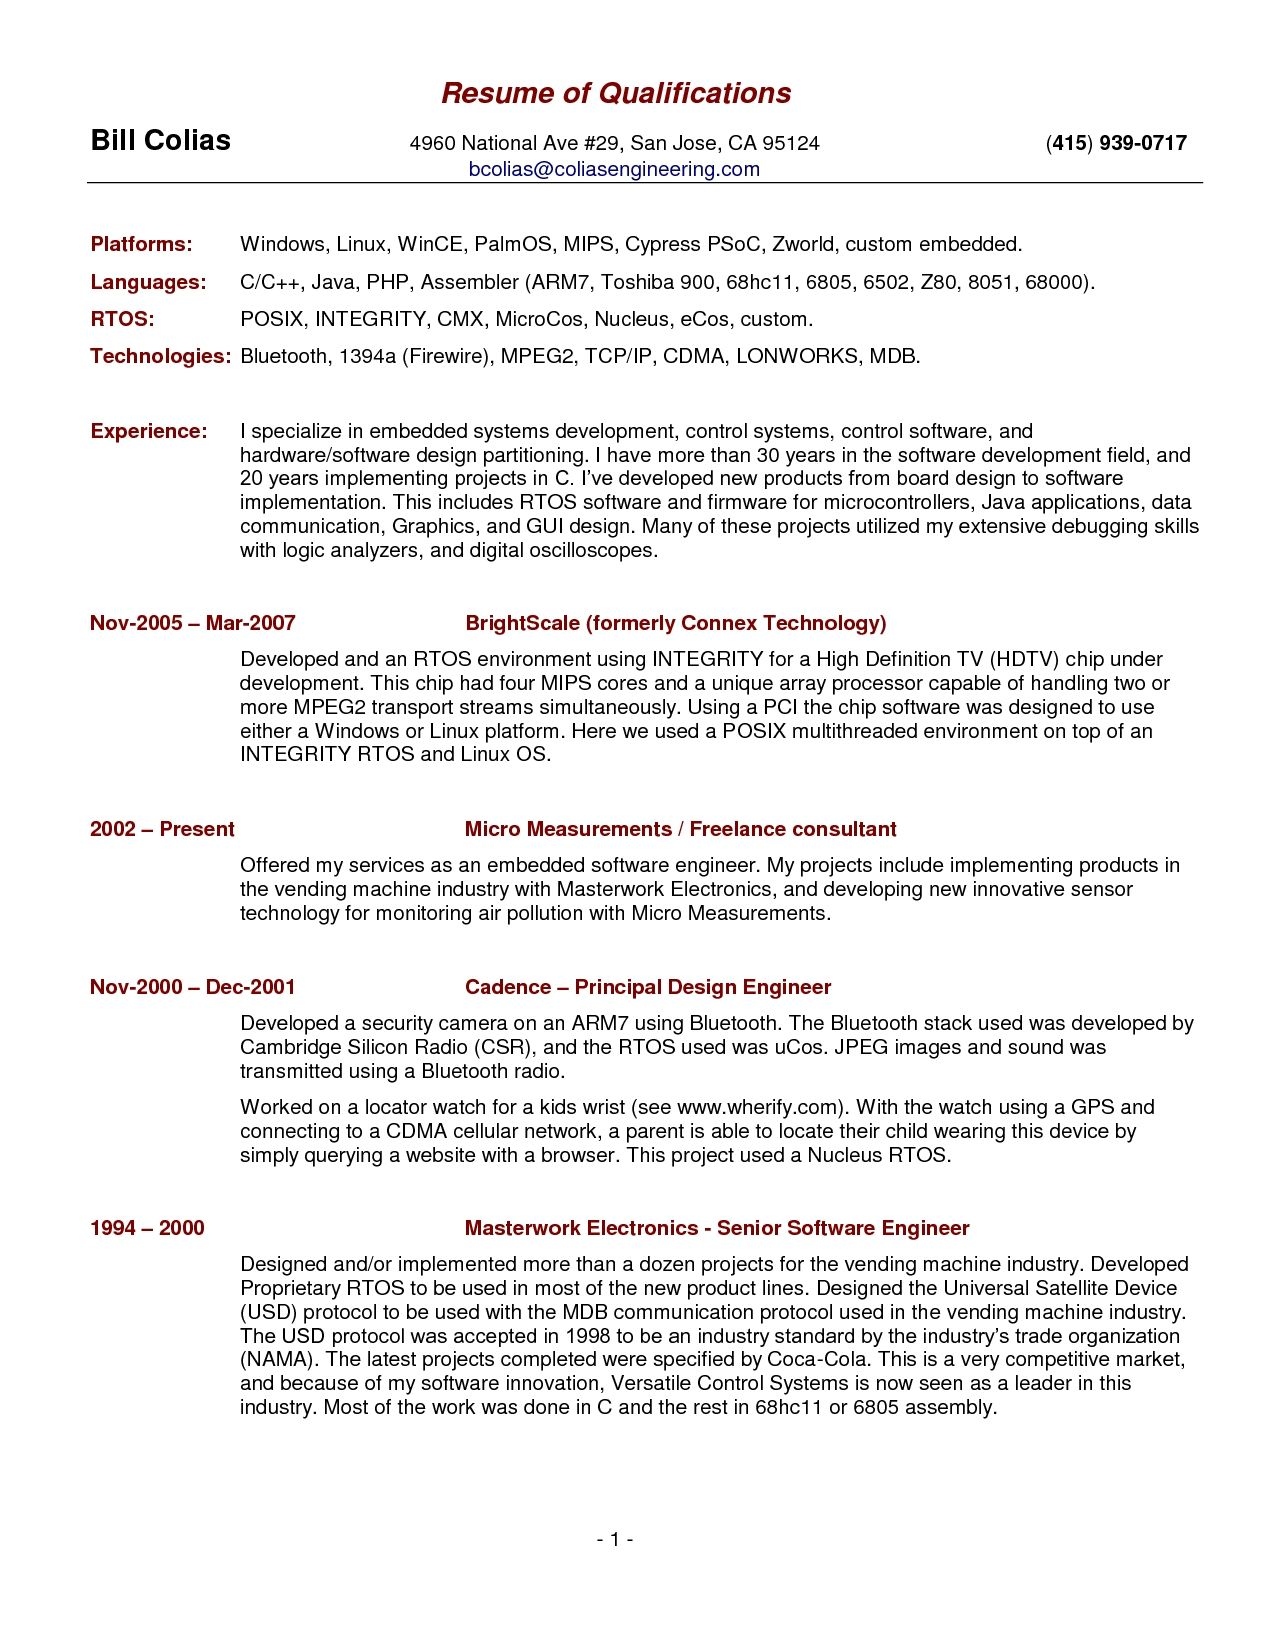 Resume Examples Skills Adorable Qualifications For A Resume Examples 7F8Ea3A2A New Resume Skills 2018